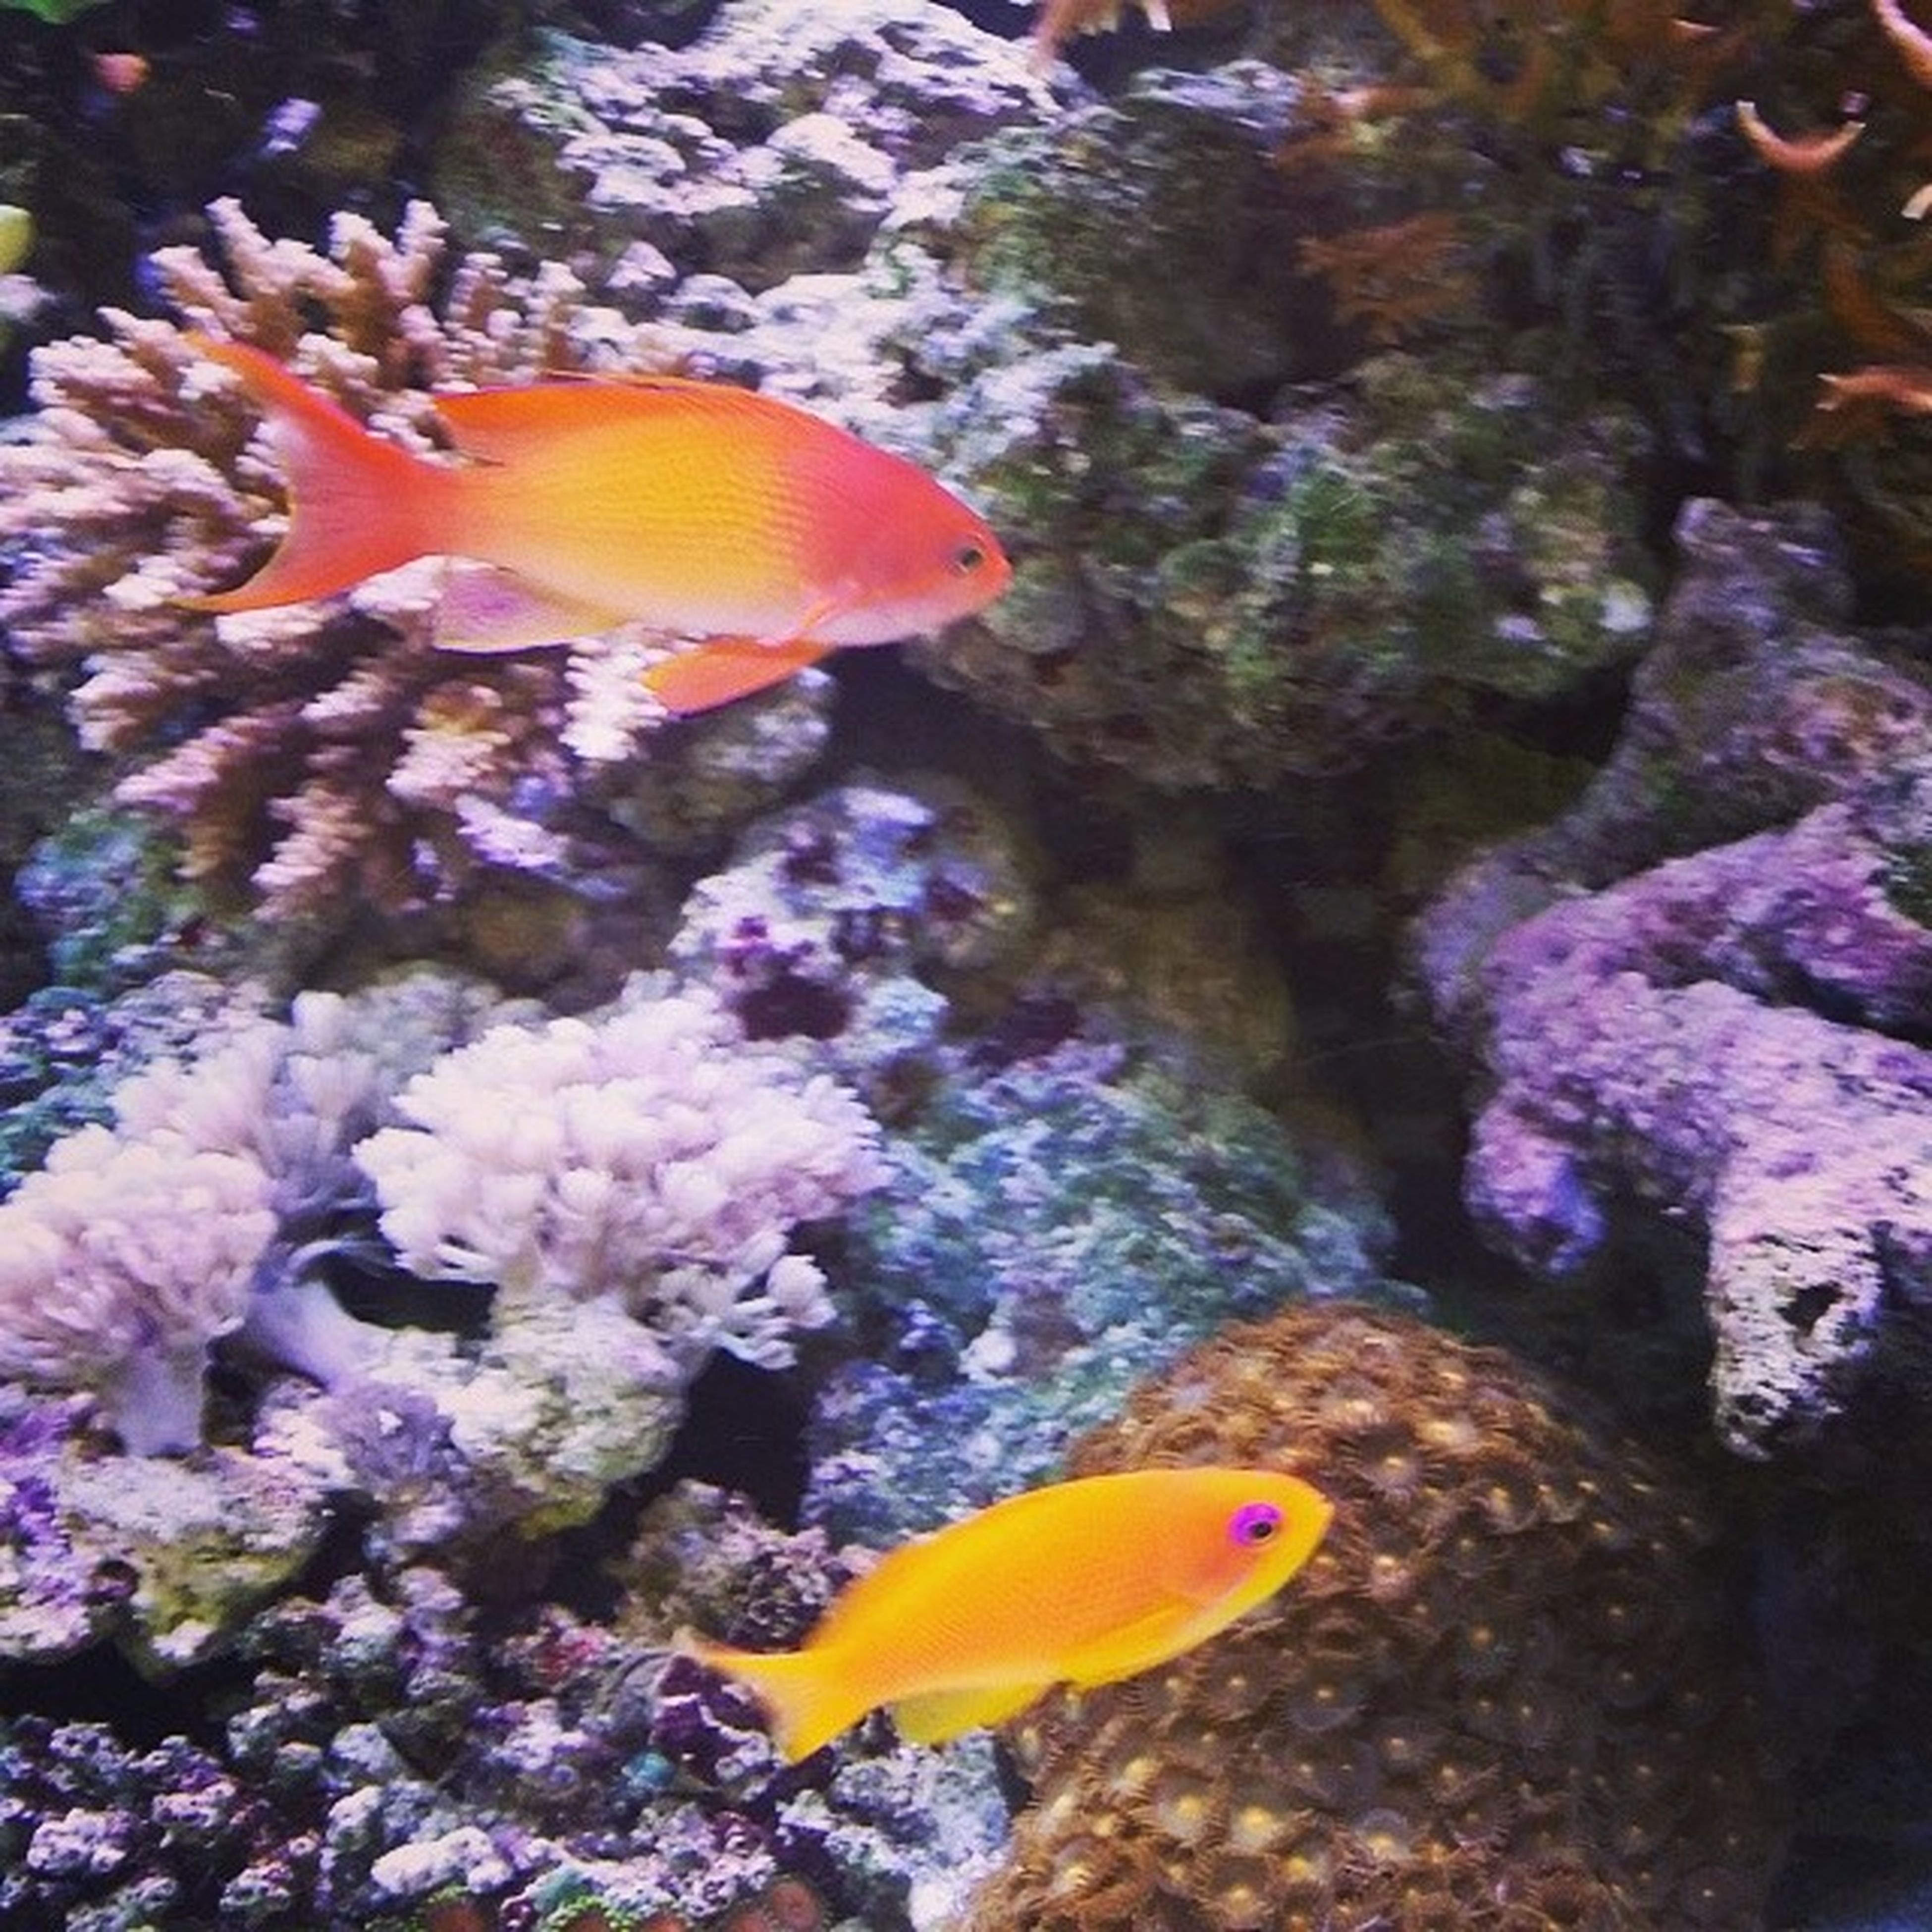 animal themes, animals in the wild, underwater, wildlife, sea life, undersea, yellow, beauty in nature, nature, close-up, fish, coral, one animal, natural pattern, water, swimming, flower, no people, vibrant color, growth